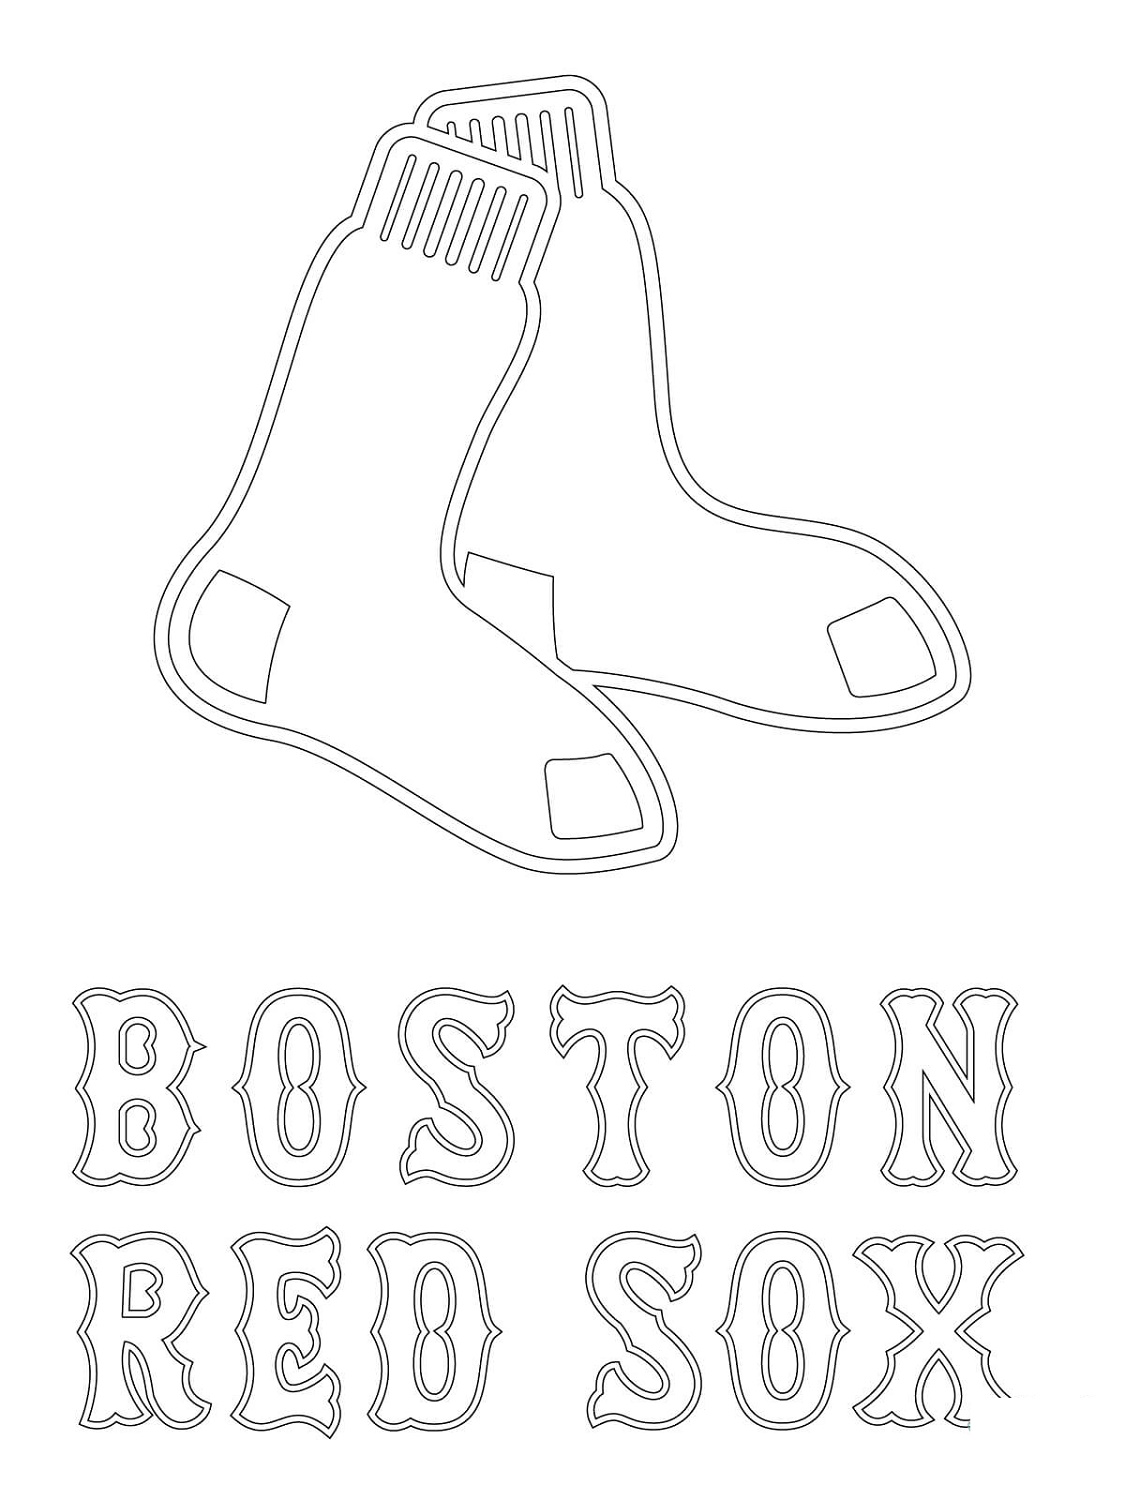 Red Sox Coloring Pages Boston